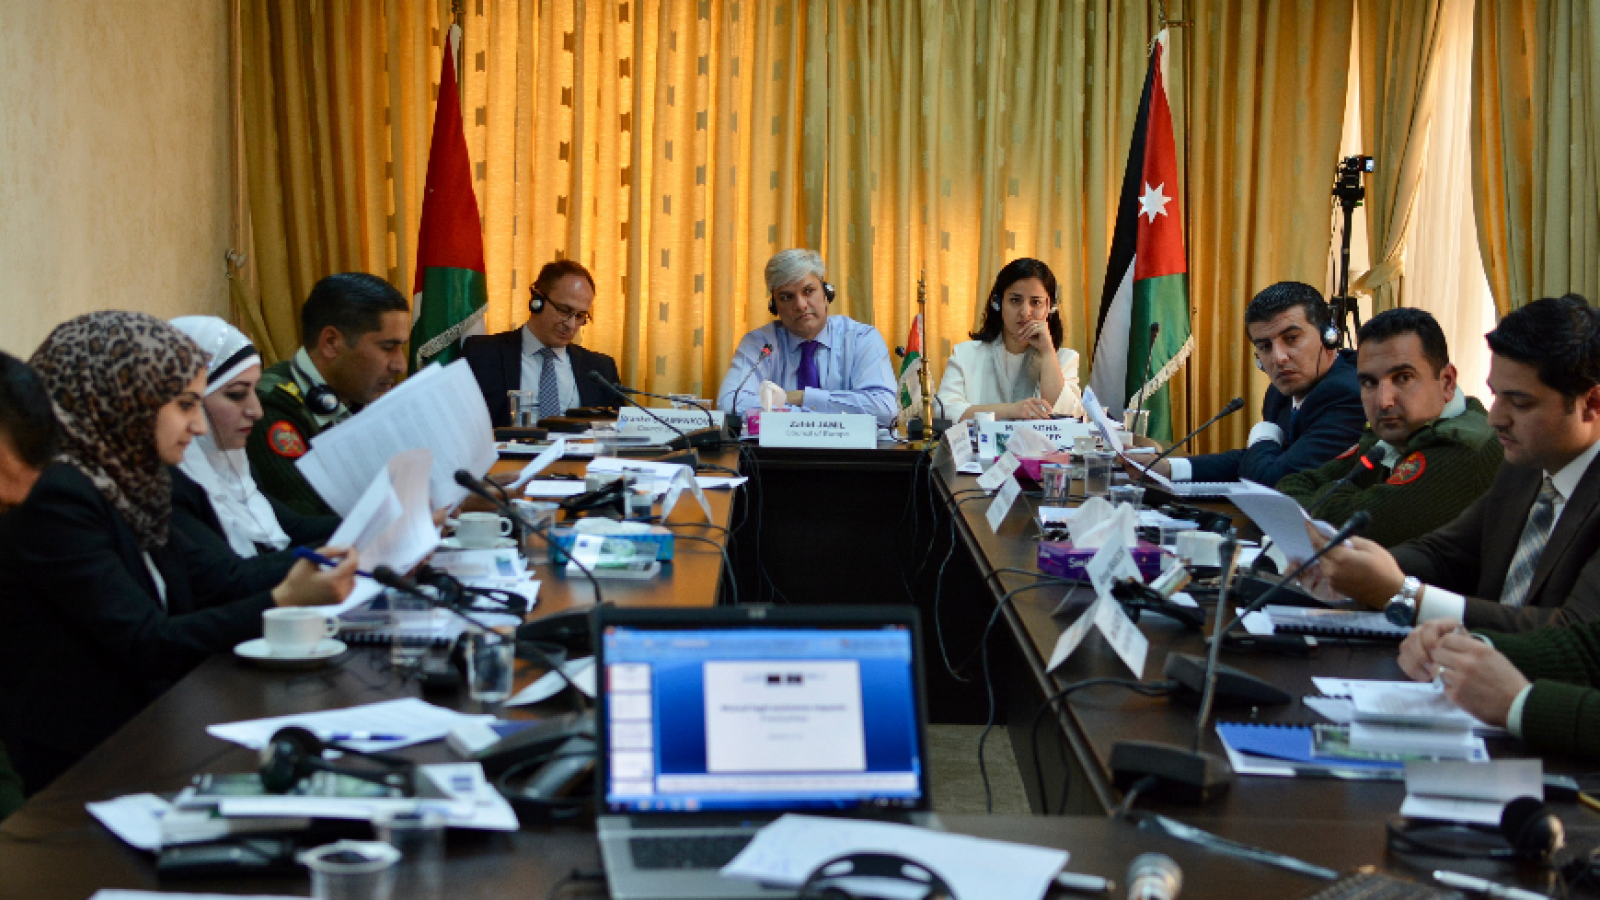 EU-funded CyberSouth advanced judicial training on cybercrime and electronic evidence organized in Jordan